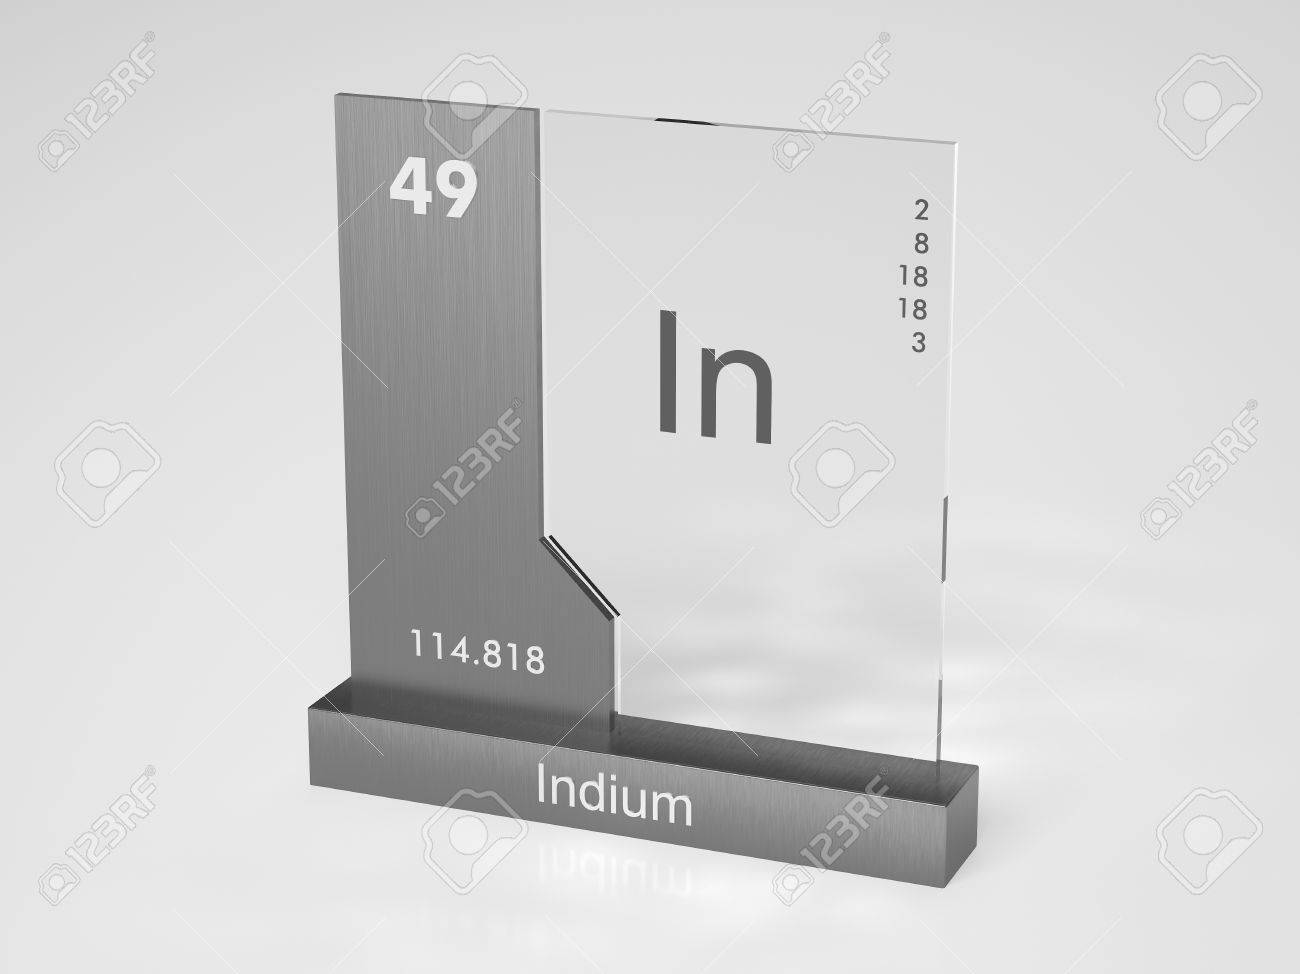 Indium symbol in chemical element of the periodic table stock indium symbol in chemical element of the periodic table stock photo 10470010 gamestrikefo Gallery